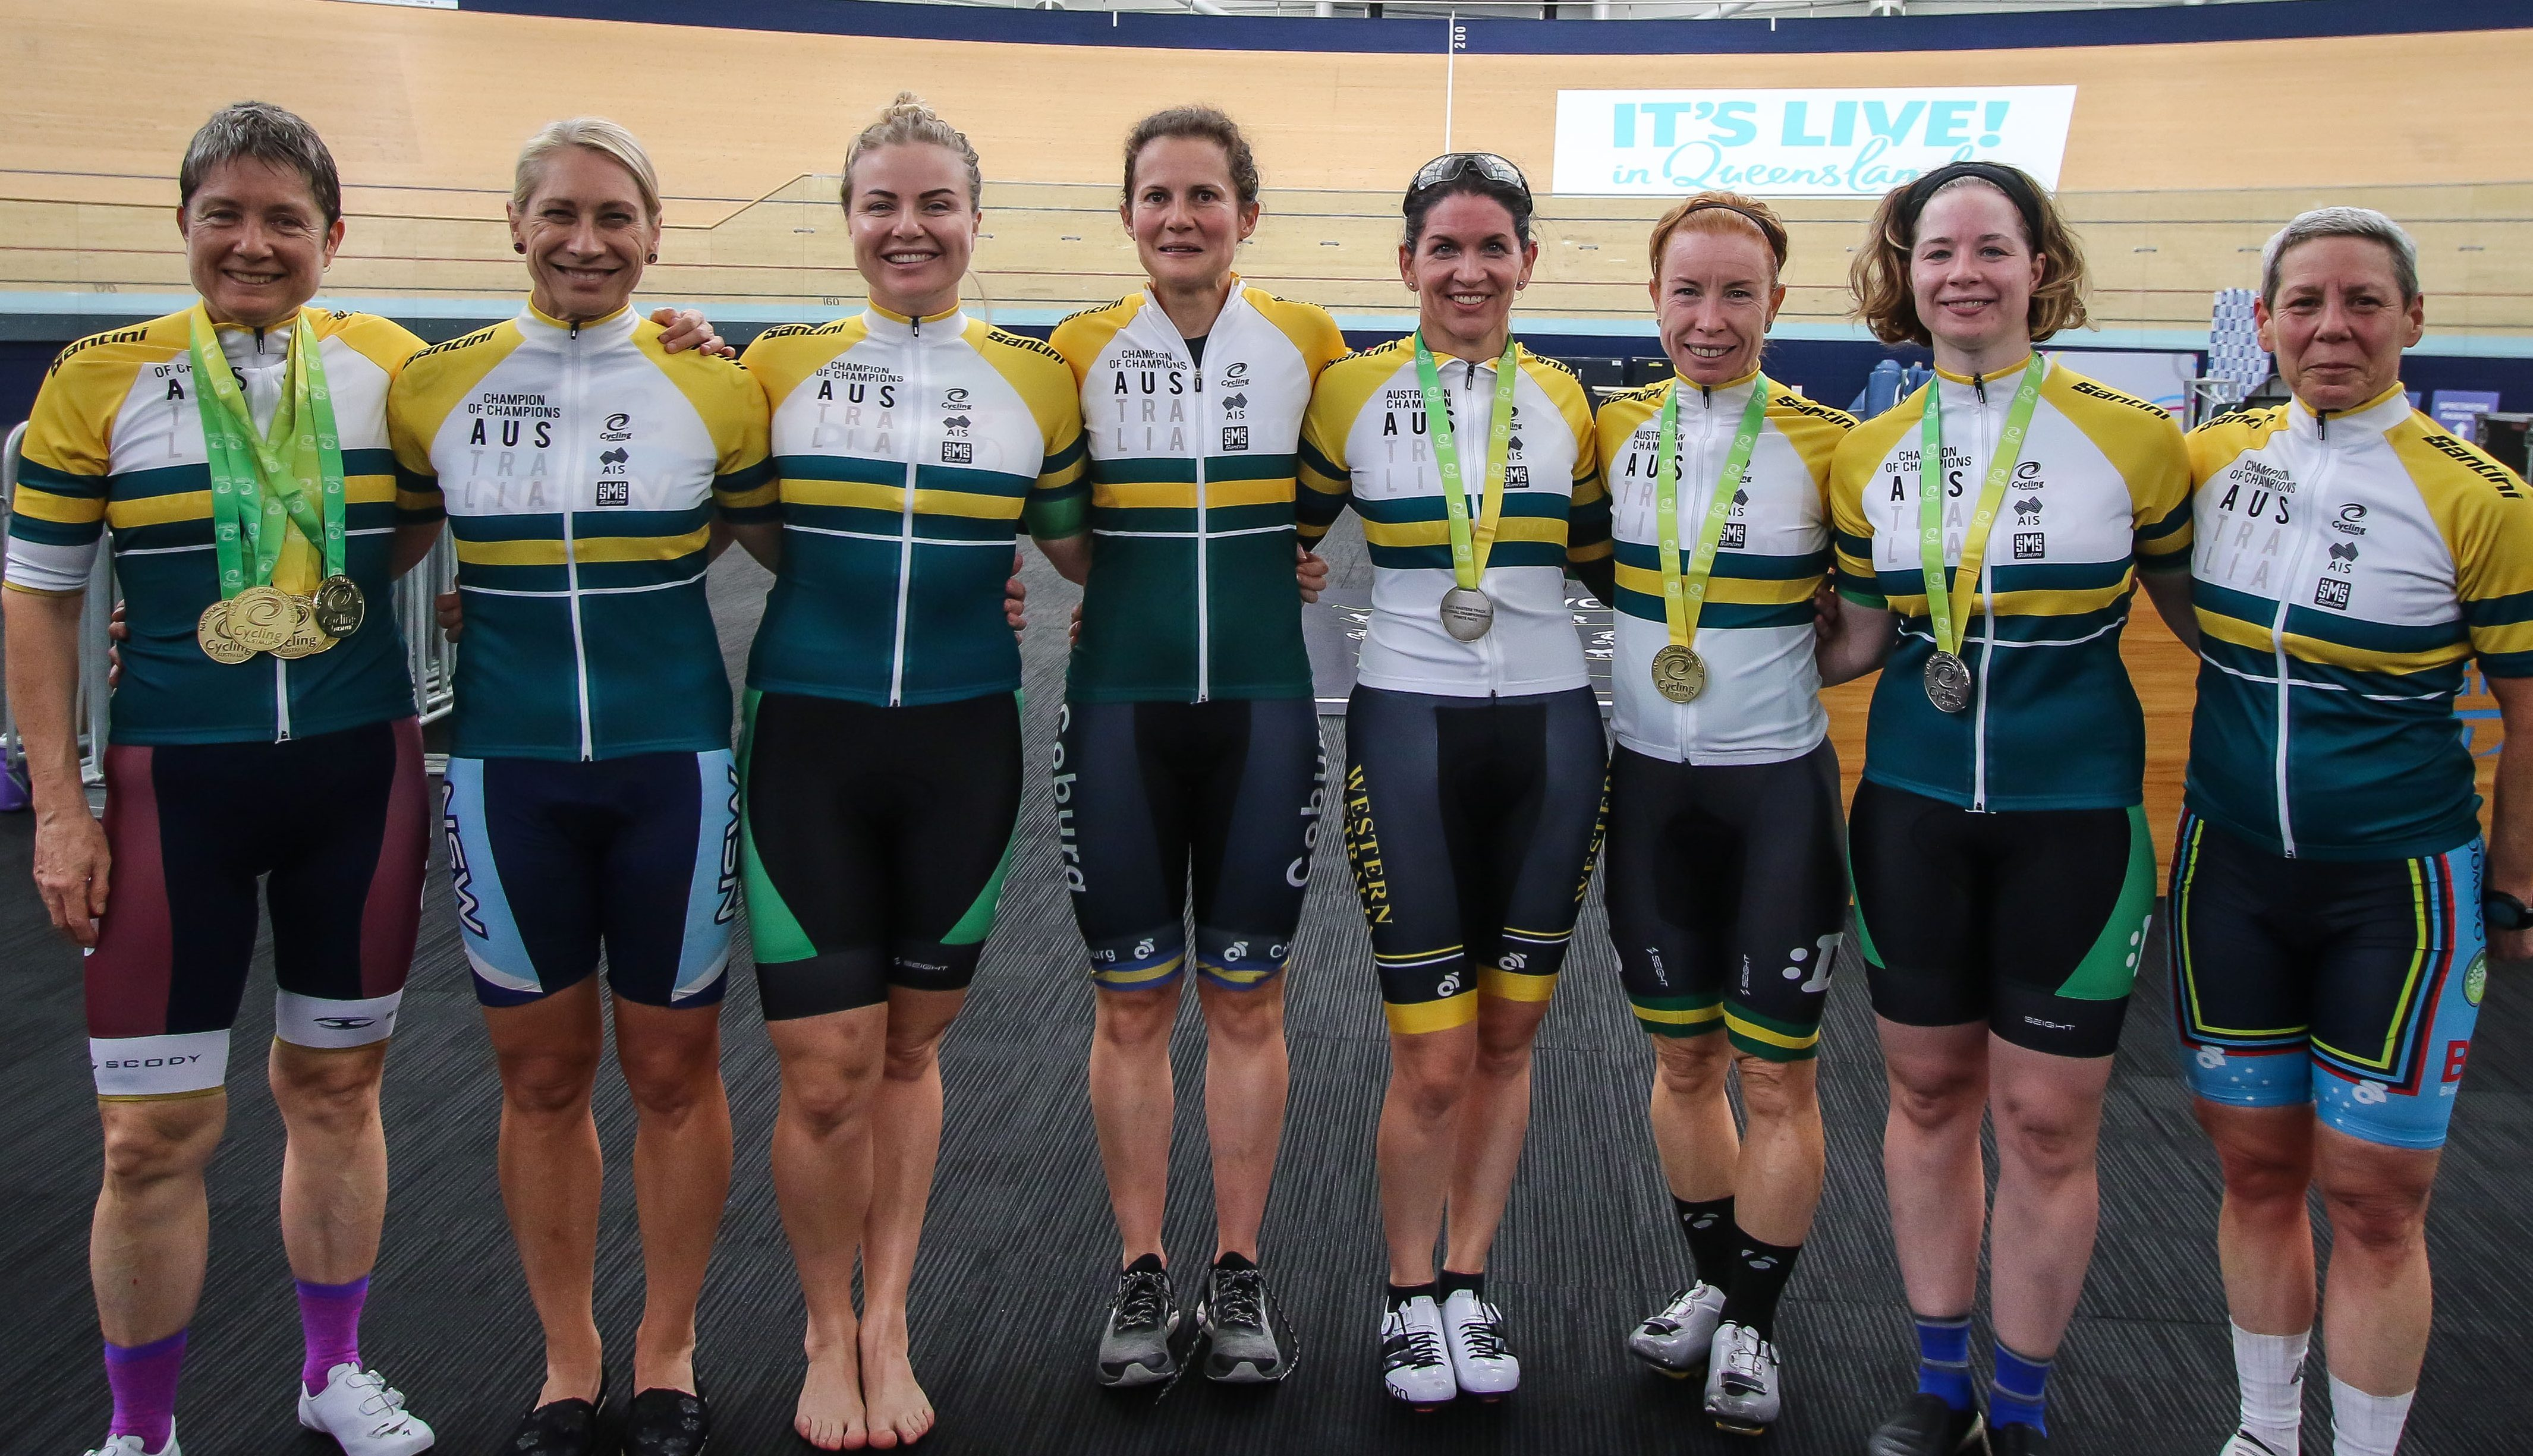 Masters: Champions of Champions crowned